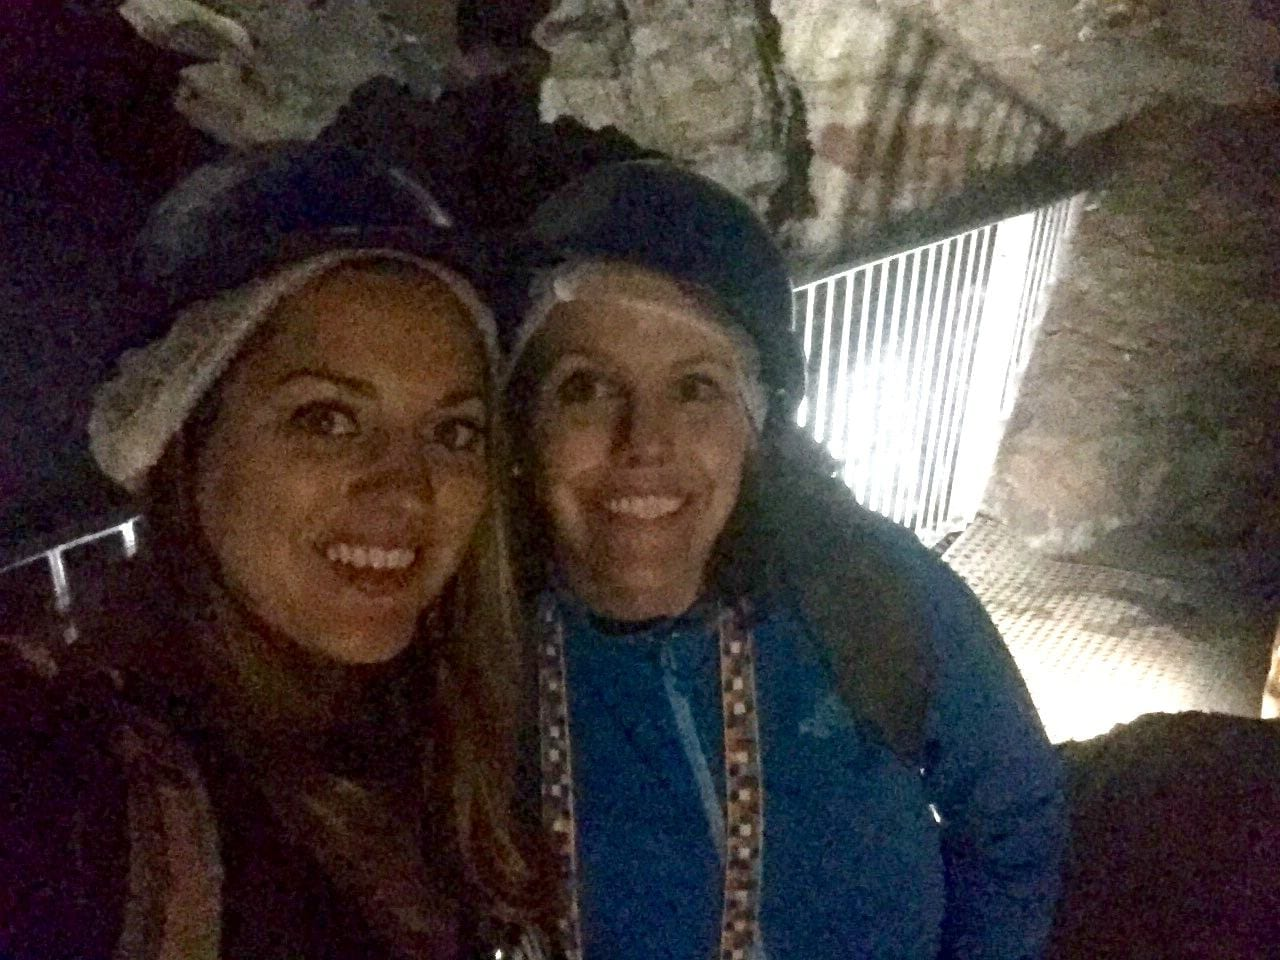 Kate and Beth at the Sterkfontein Caves